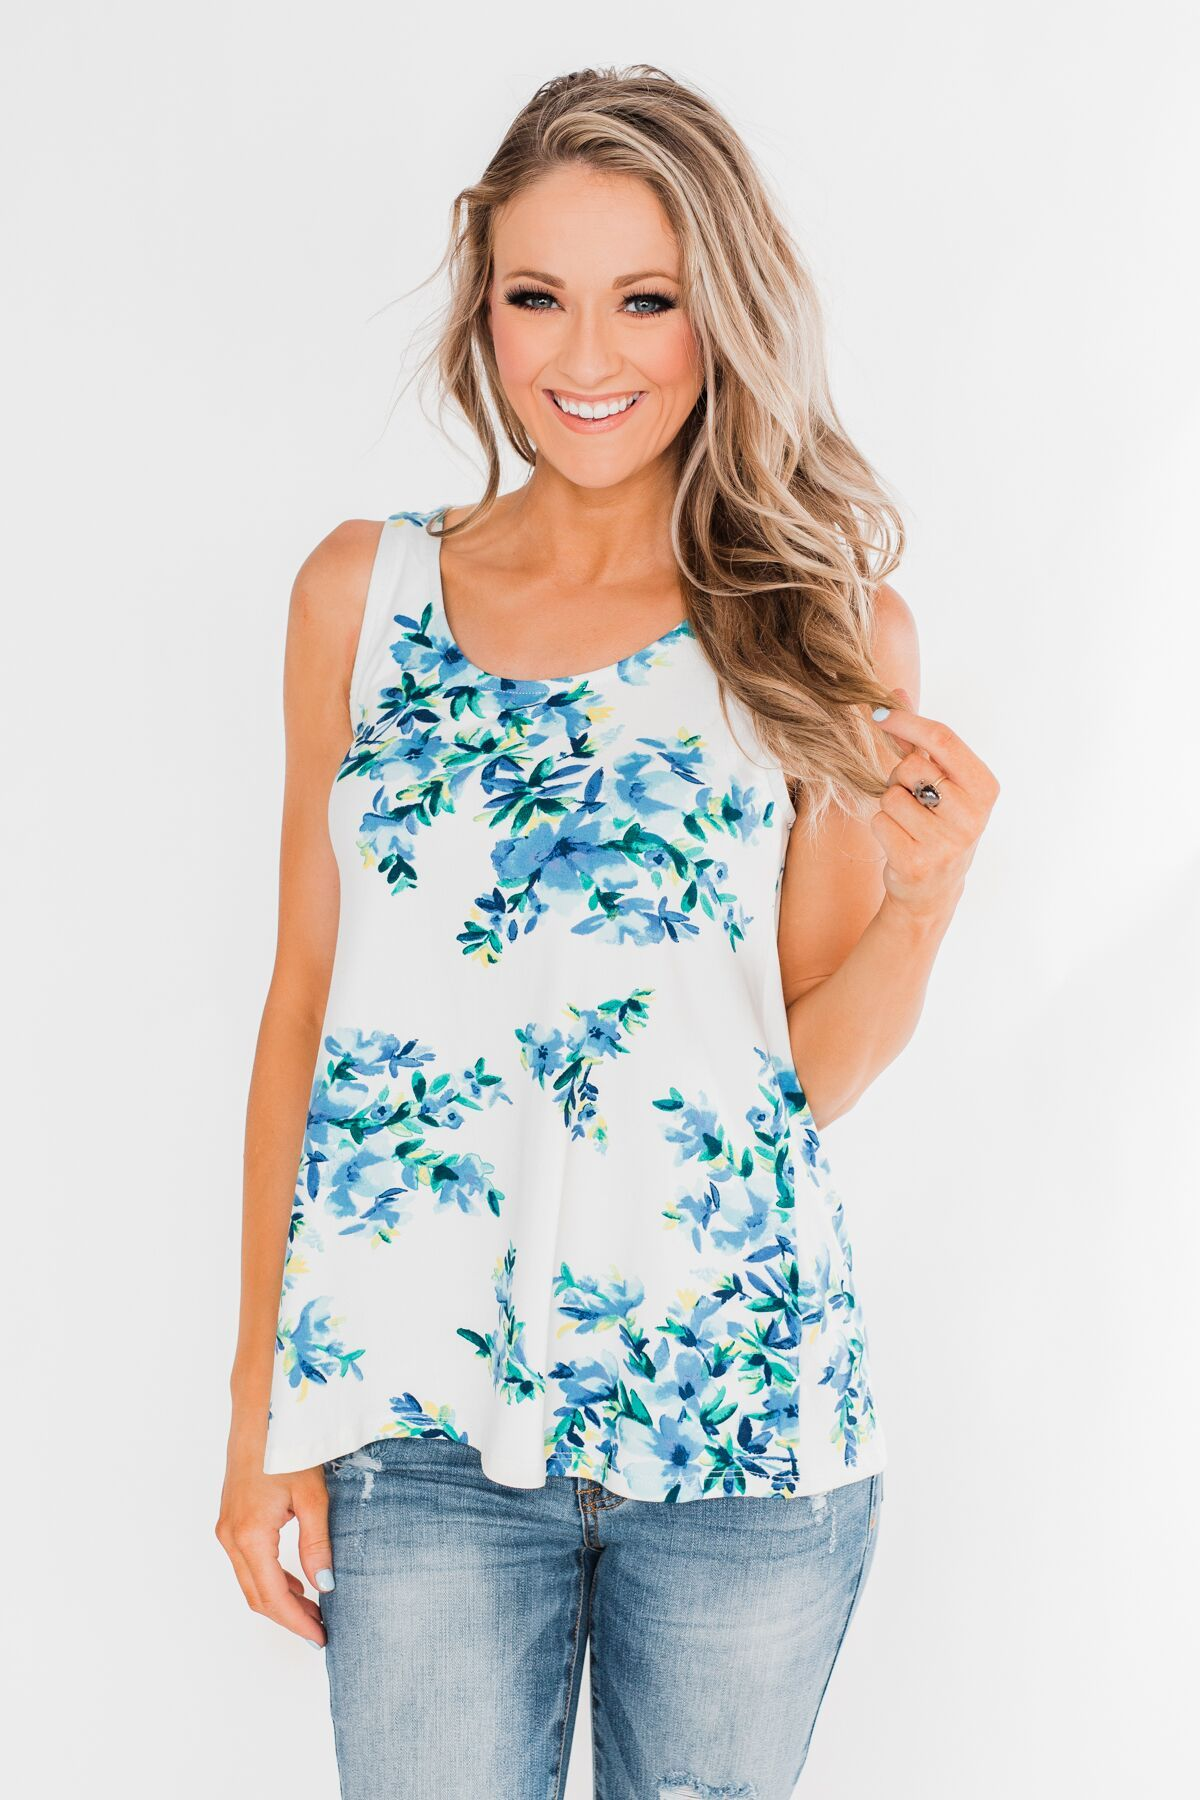 Escape To The Garden Floral Tank Top- Ivory